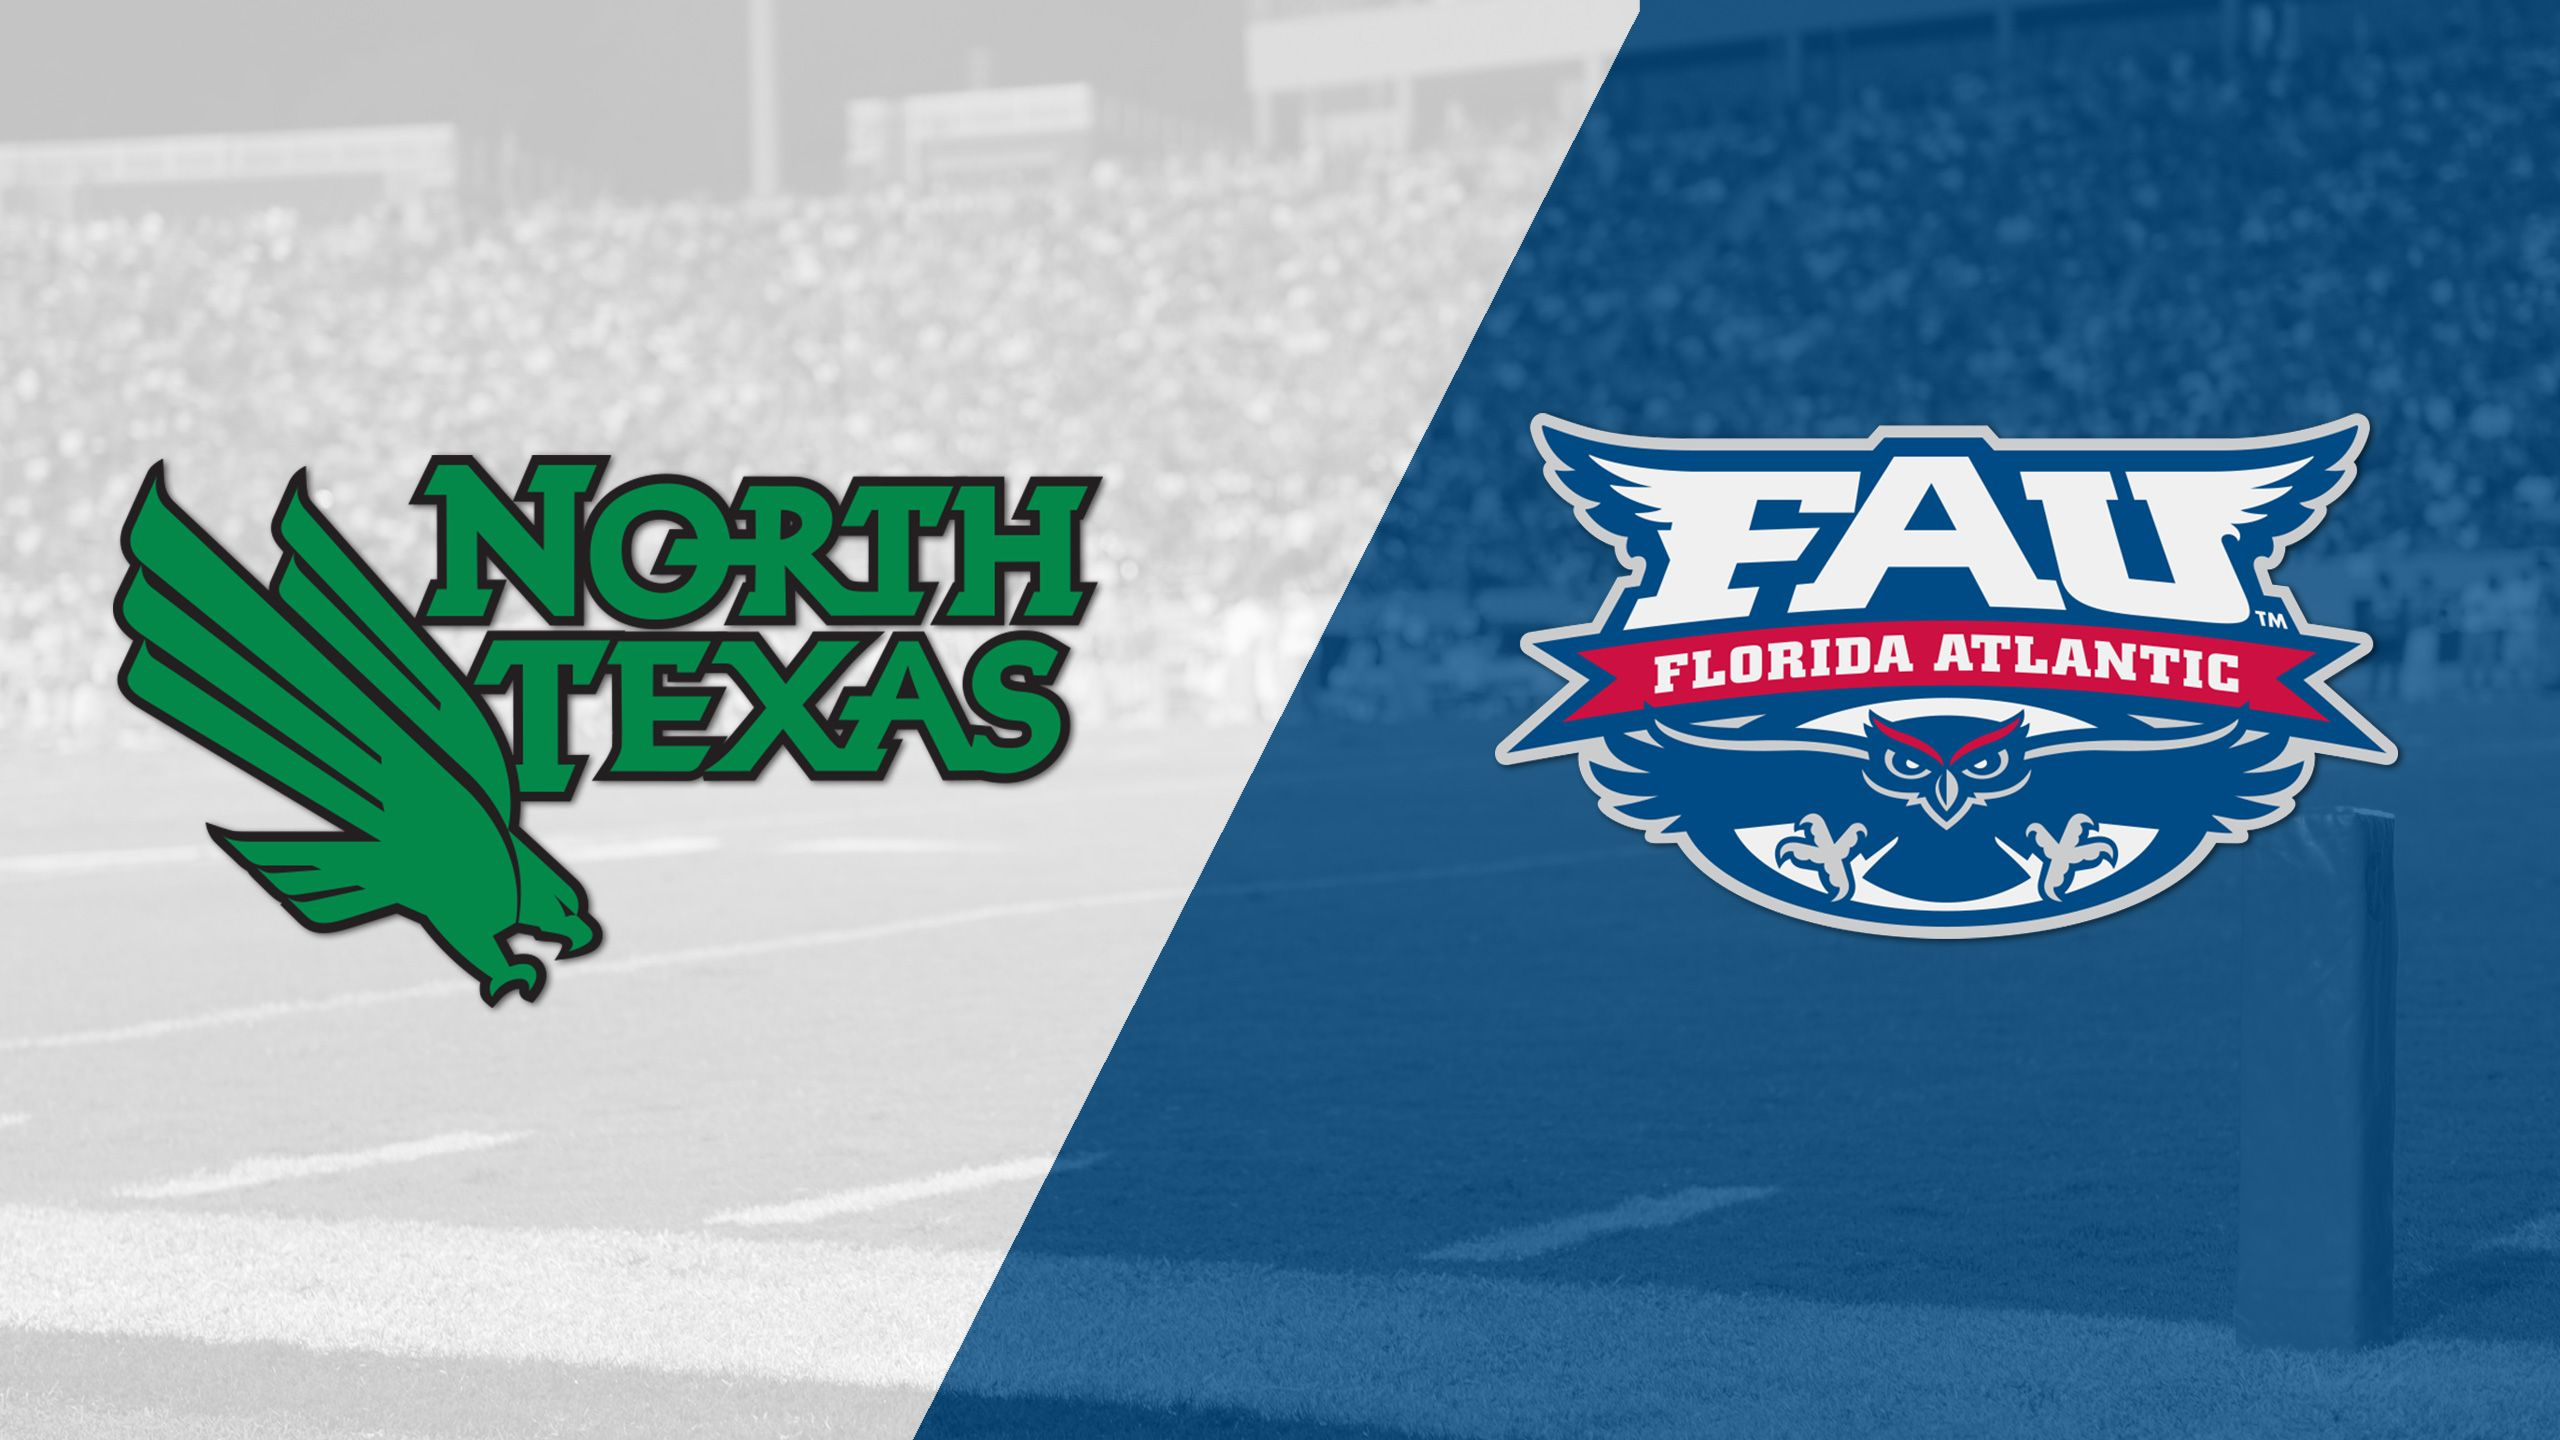 North Texas vs. Florida Atlantic (Football)